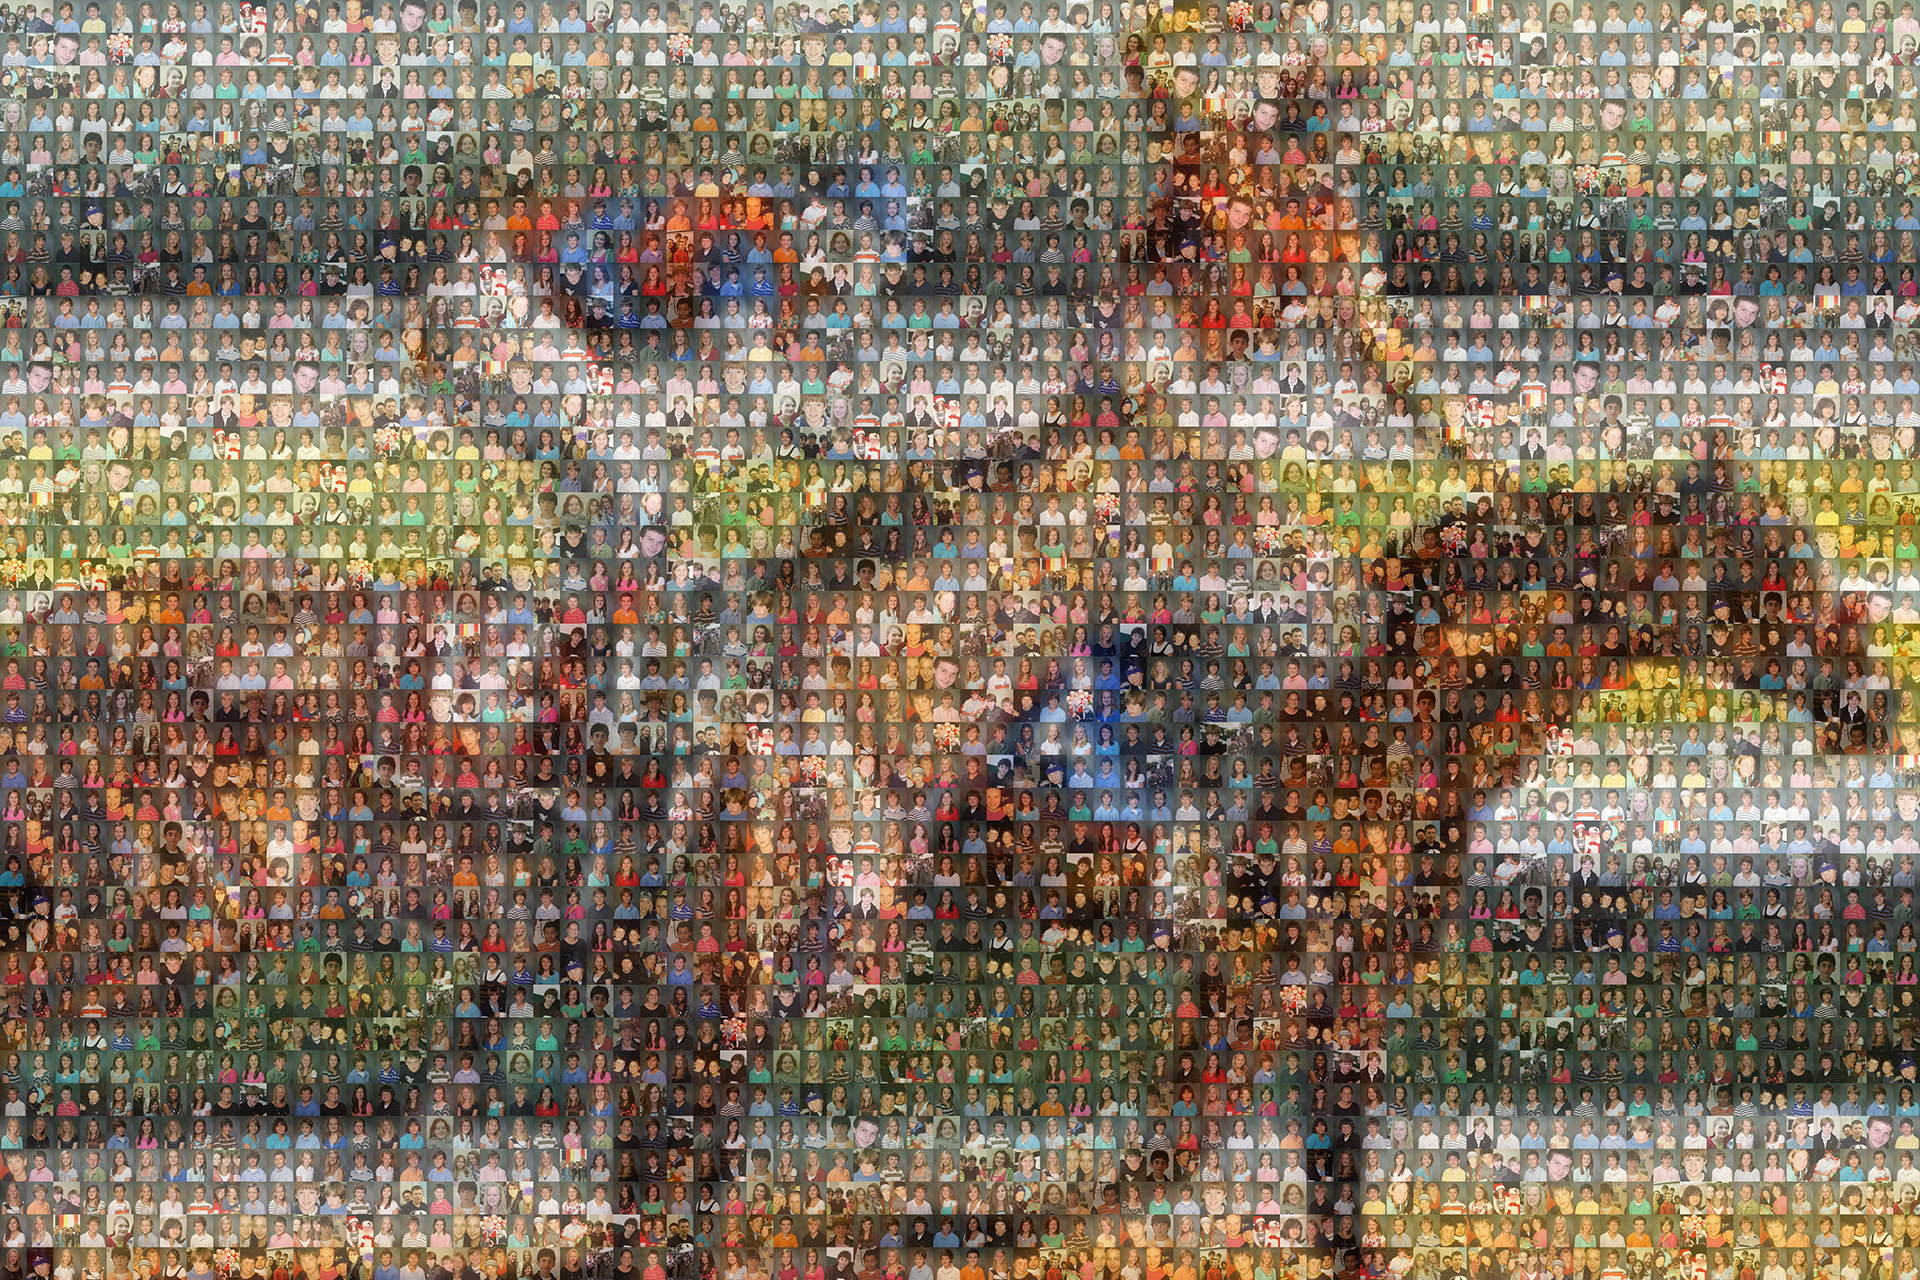 photo mosaic created using 149 student portraits